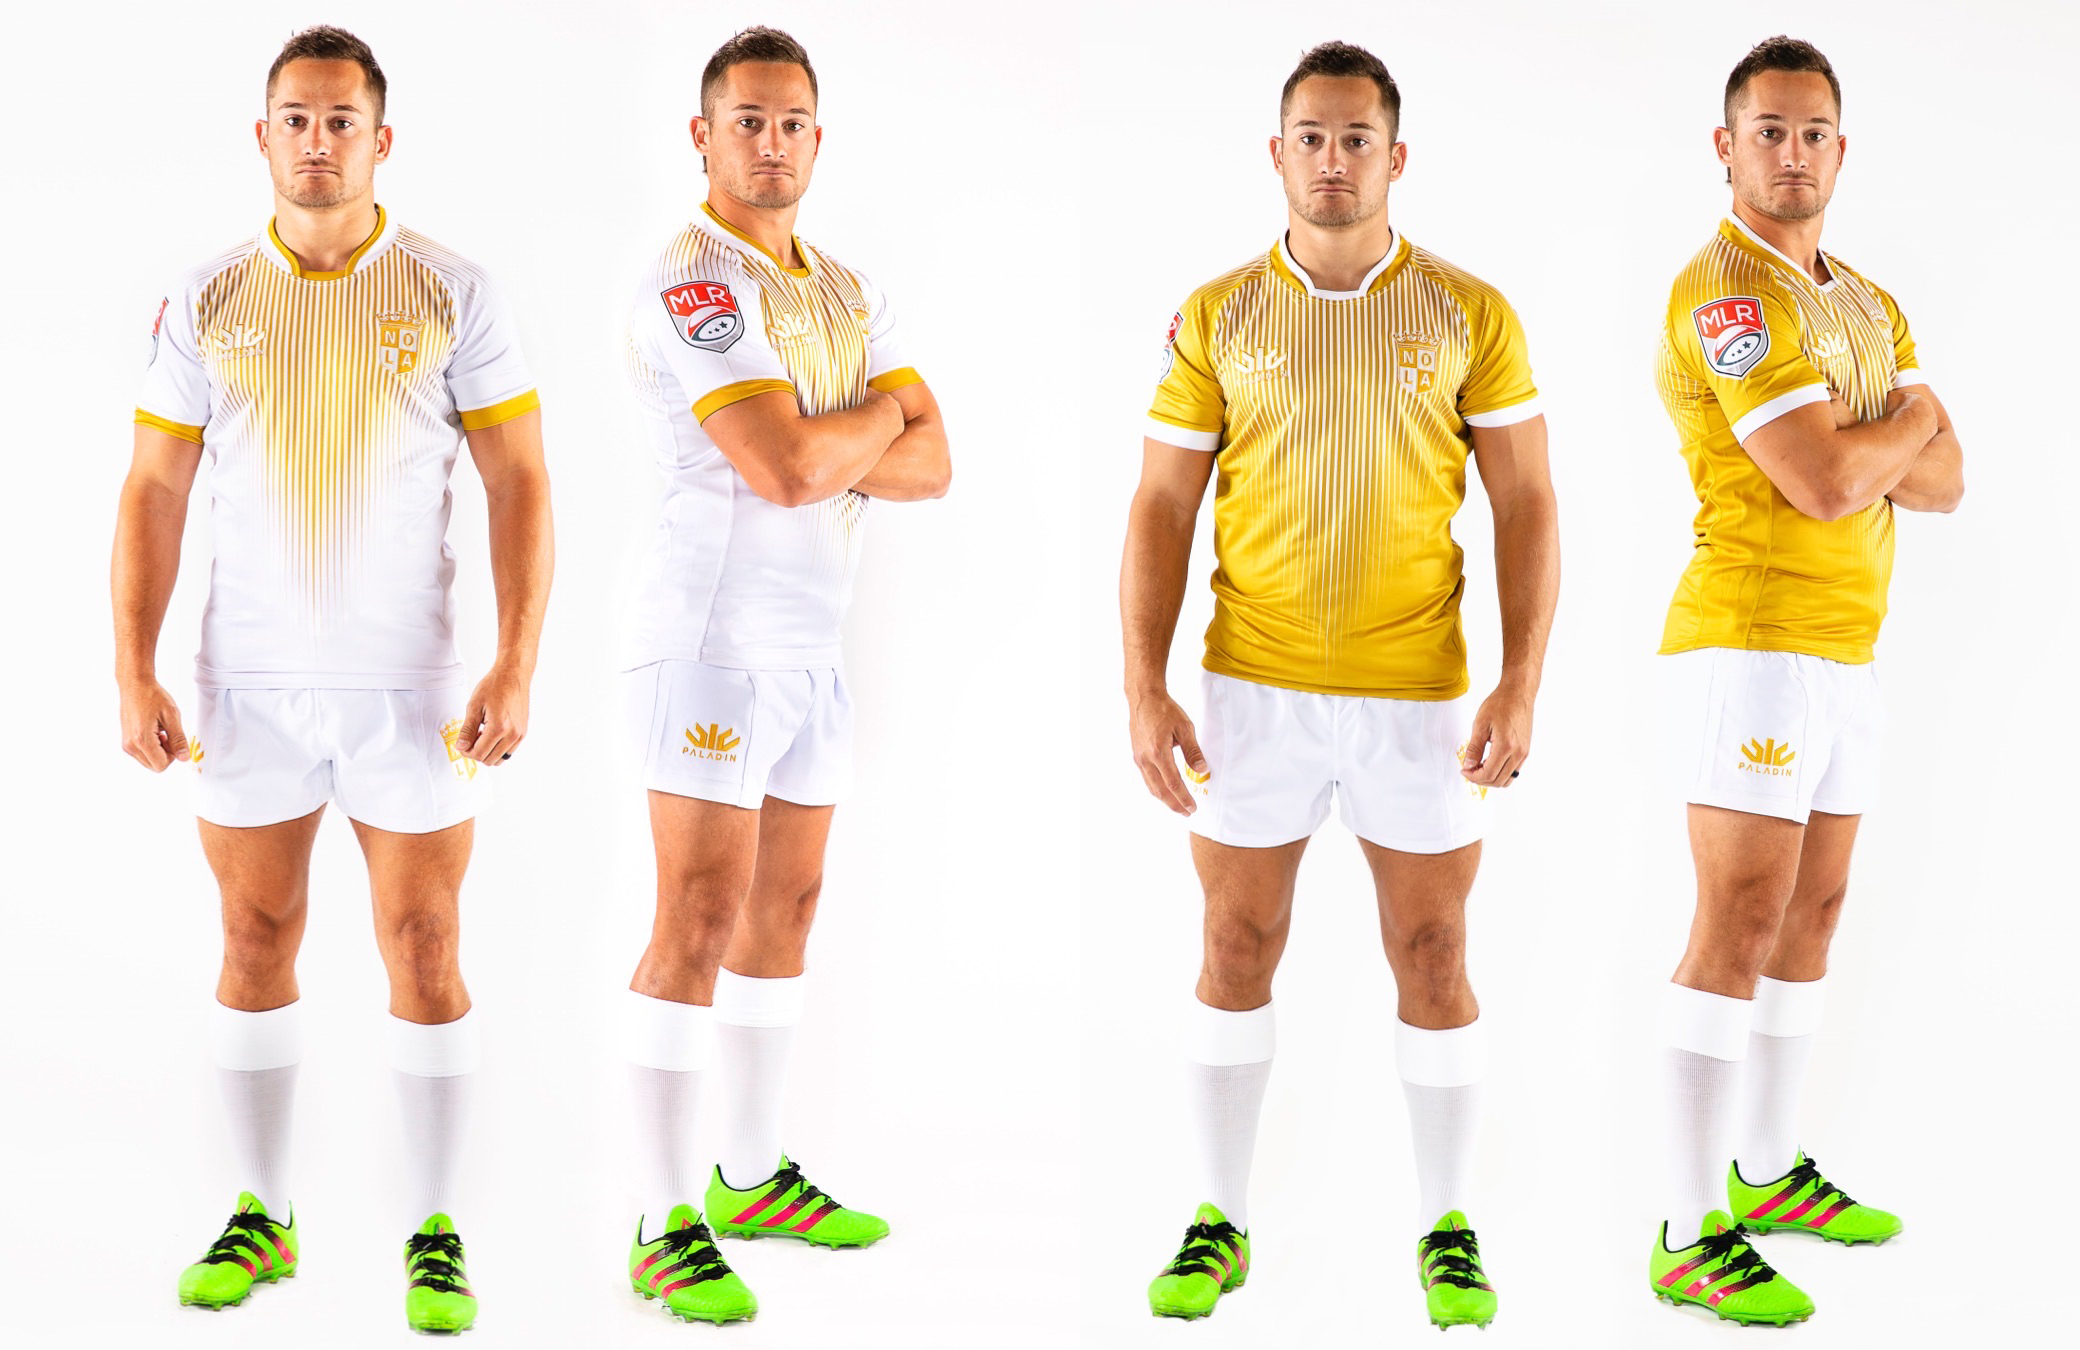 NOLA Gold reveals new kit